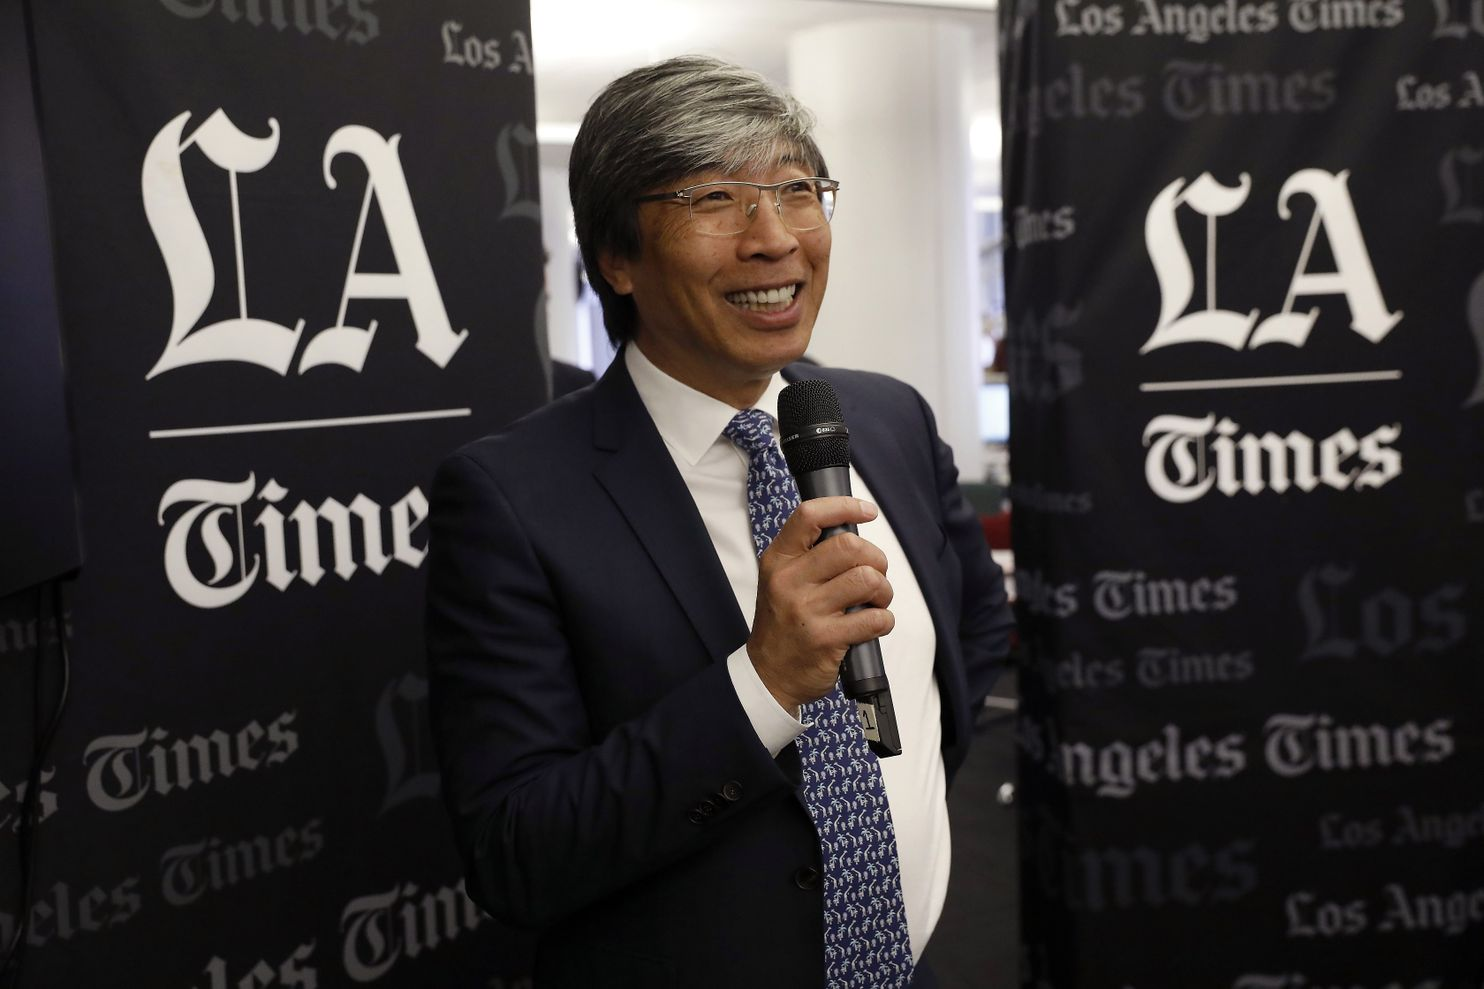 Which industry does former Eddy Award Honoree Dr. Patrick Soon-Shiong think will spark an evolution in modern news media?